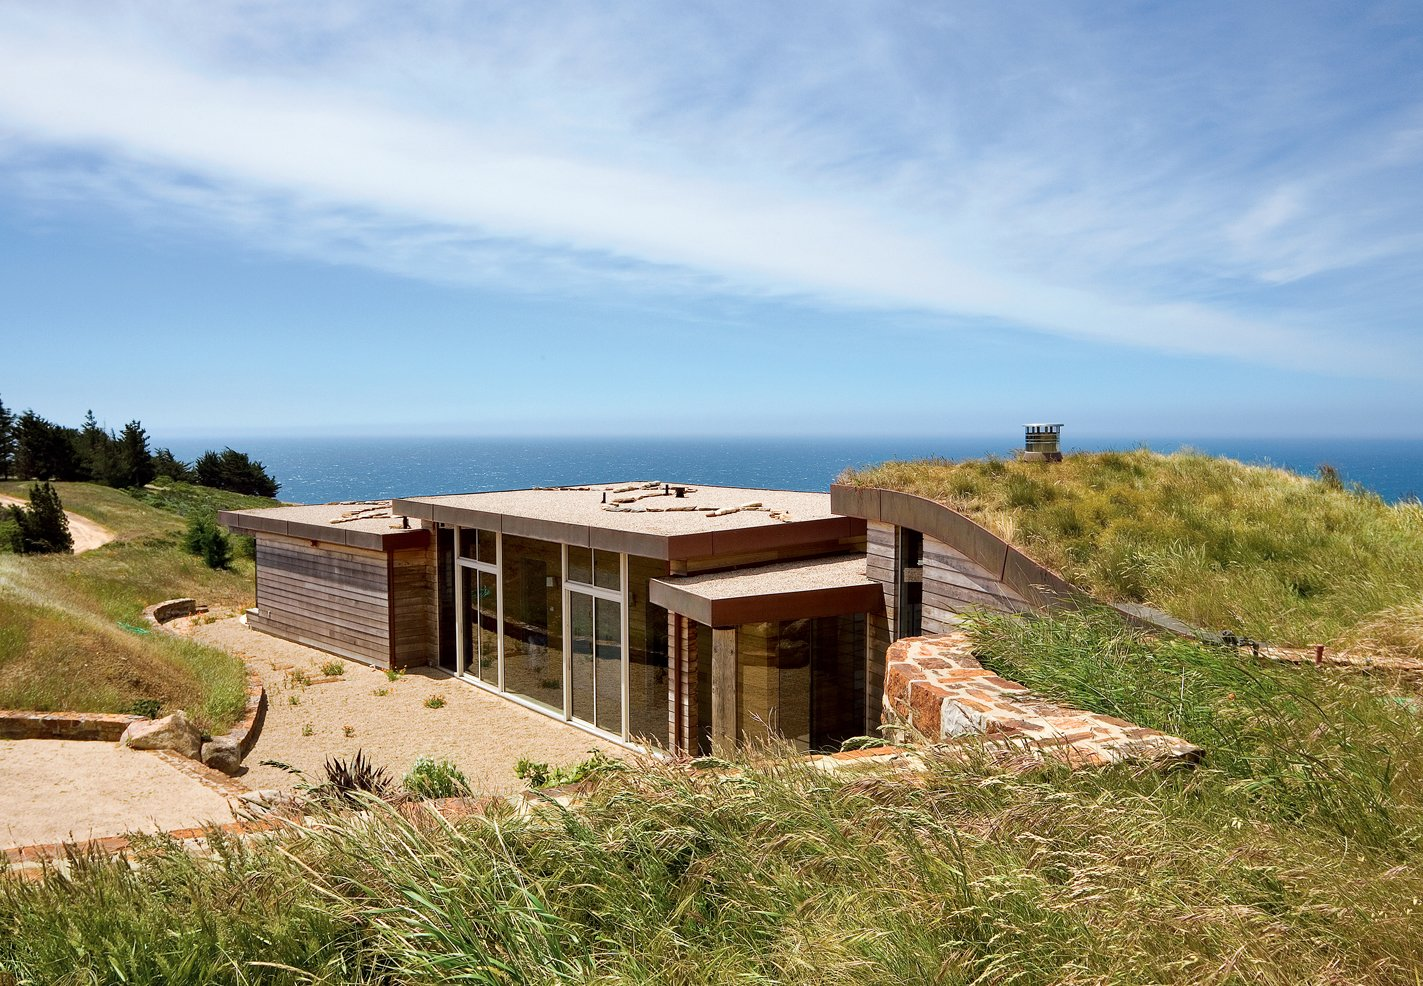 """I've been all around the world, and whenever I come back here, I realize that the Pacific Ocean seen from those cliffs is the most beautiful view on earth,"" says the resident of this house built into a hillside in Big Sur, California. 11 Hillside Homes That Feature a Balancing Act With Nature - Photo 2 of 10"